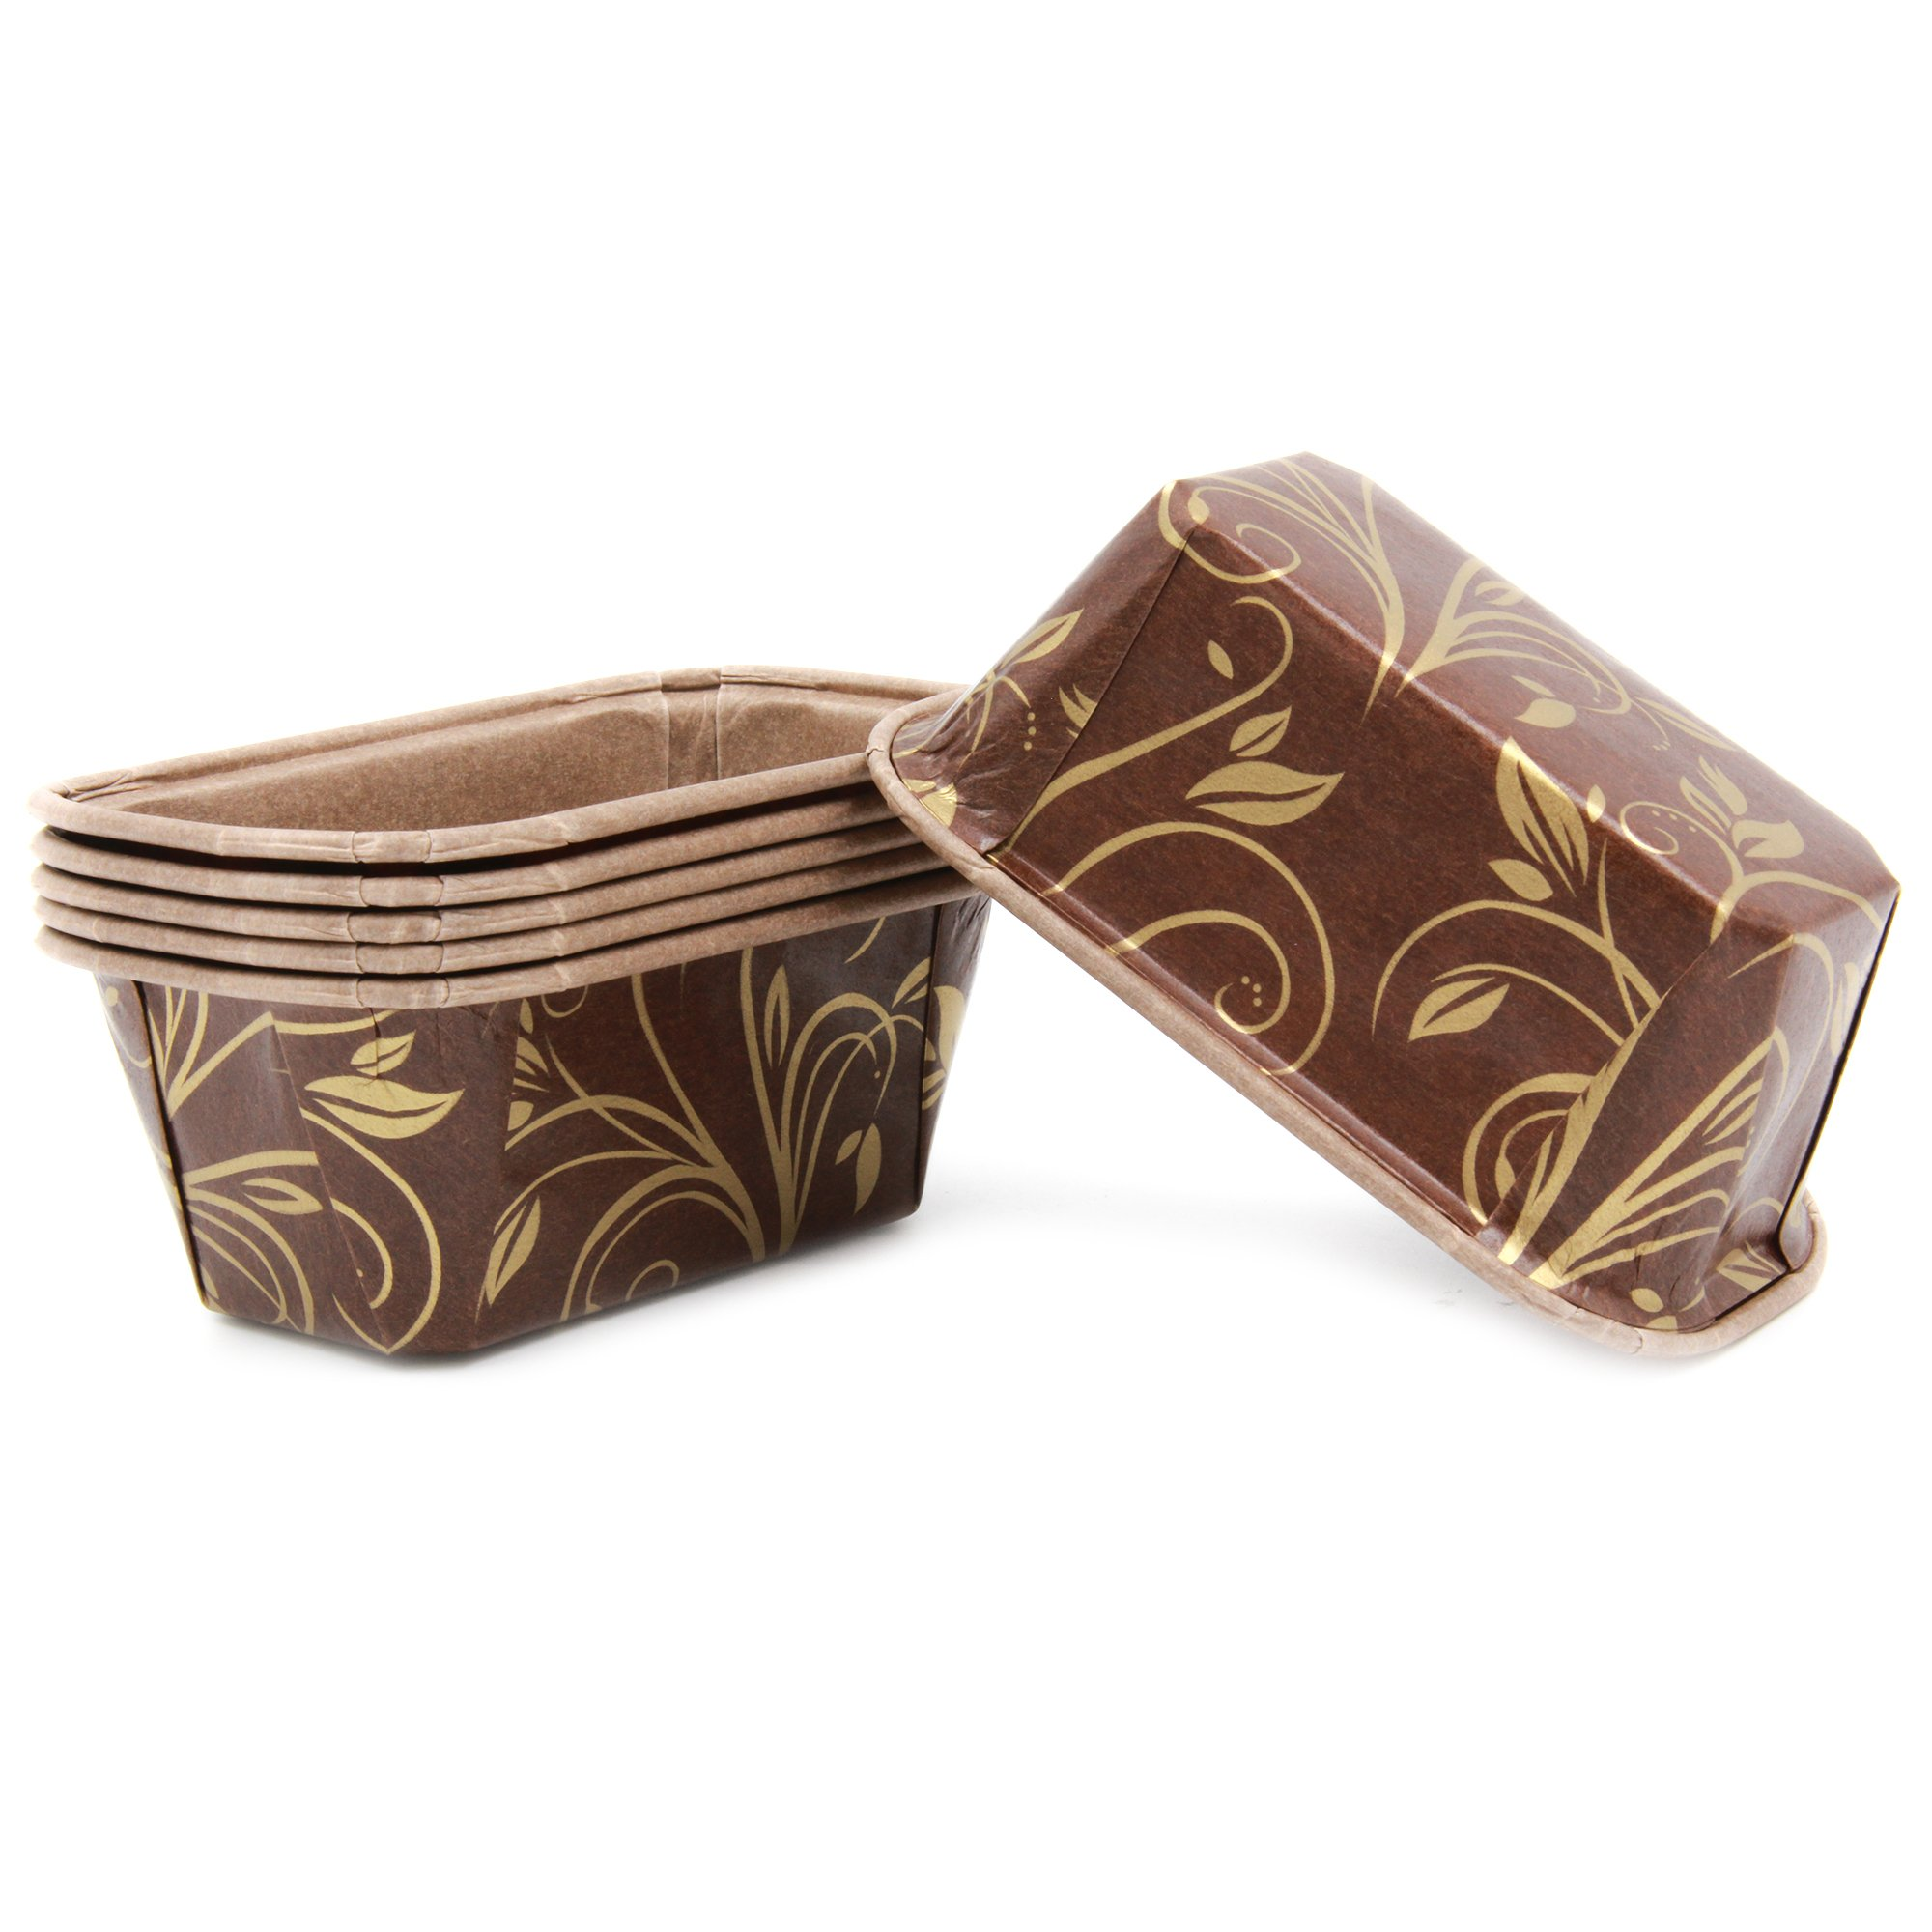 Premium Personal Mini Size Paper Baking Loaf Pan, Perfect for Chocolate Cake, Banana Bread, Brown & Gold, Set of 300 - by EcoBake by Ecobake